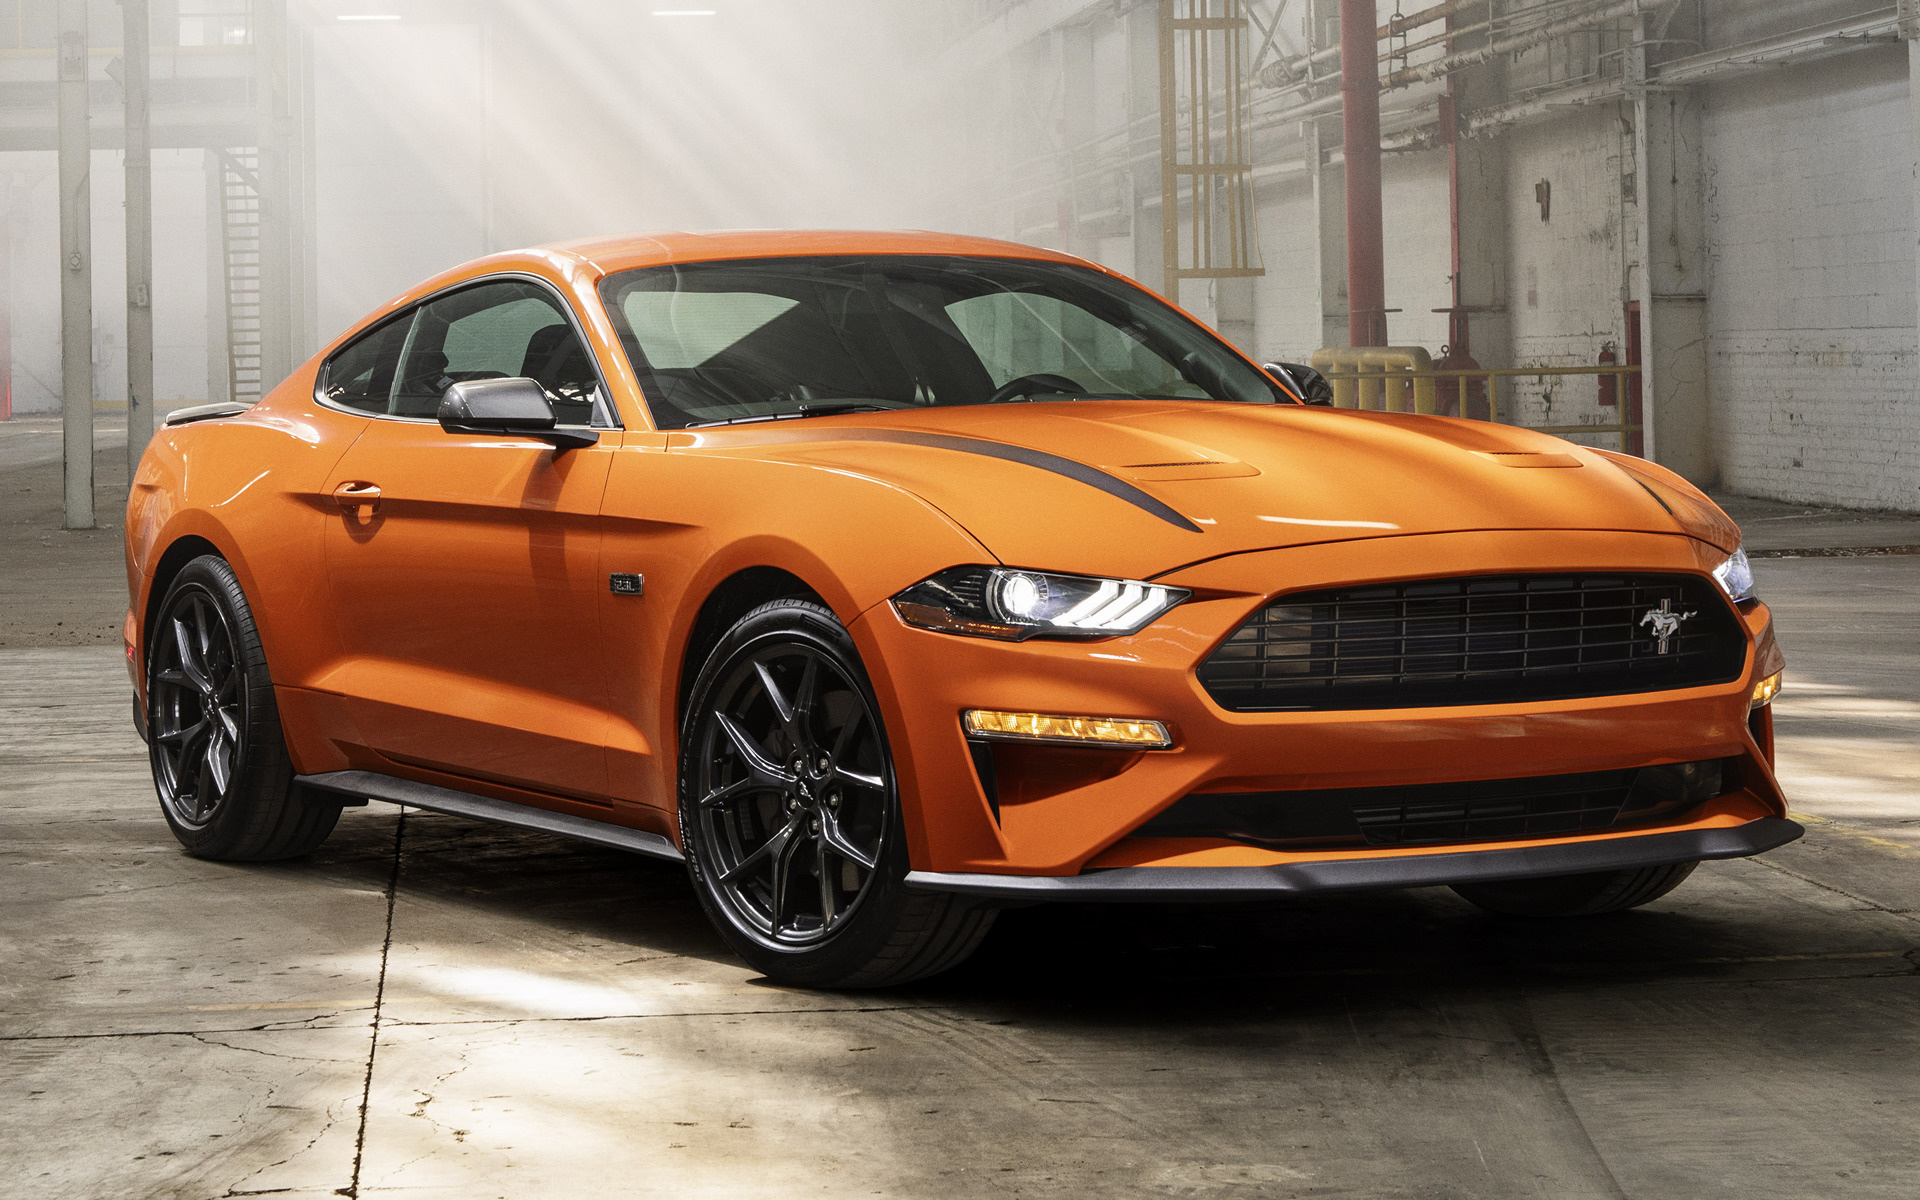 2020 Ford Mustang Price, Design and Review